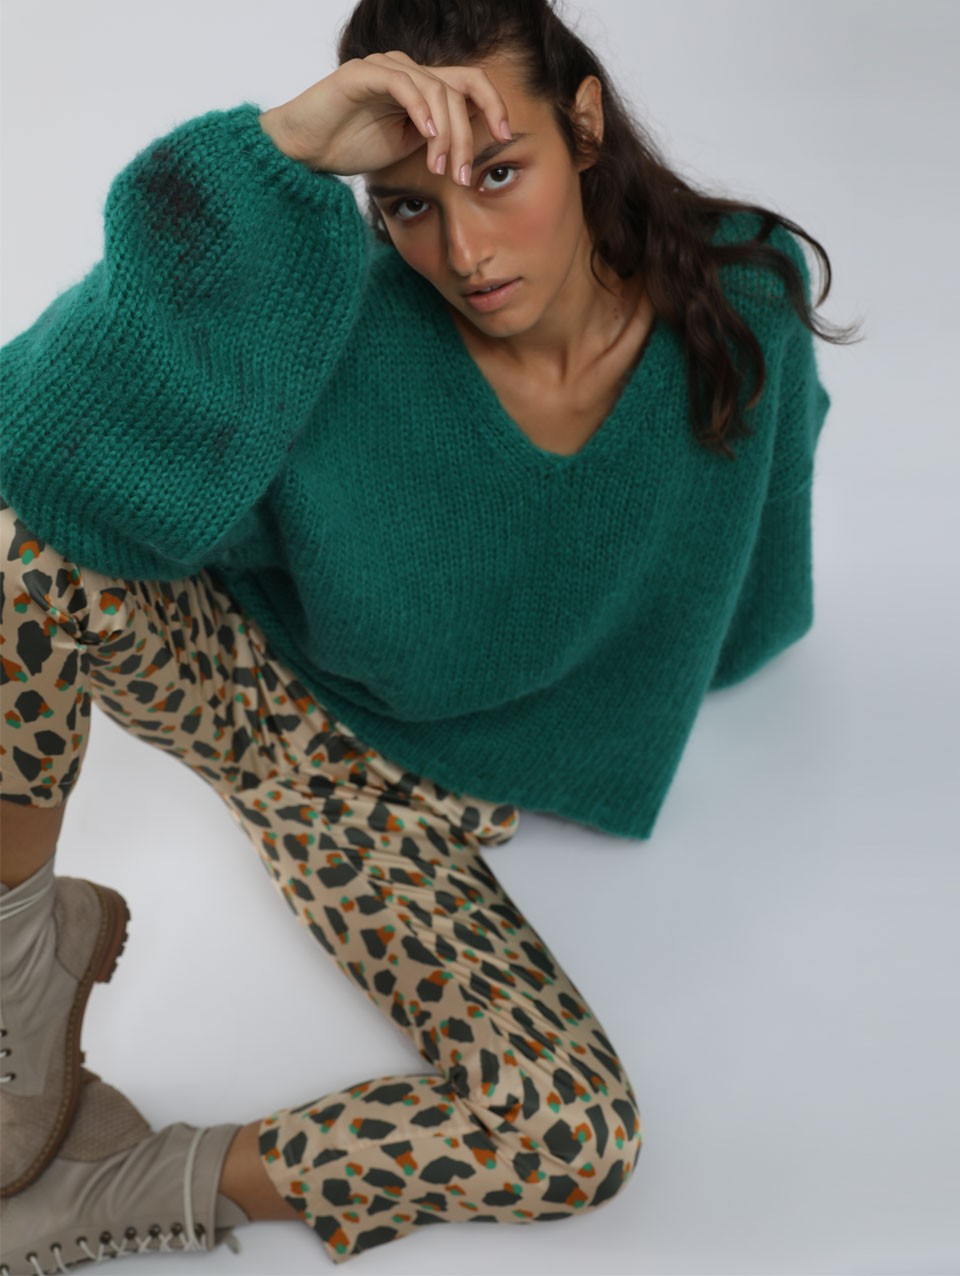 Alex V-neck Puffy Sweater -0-Green-0